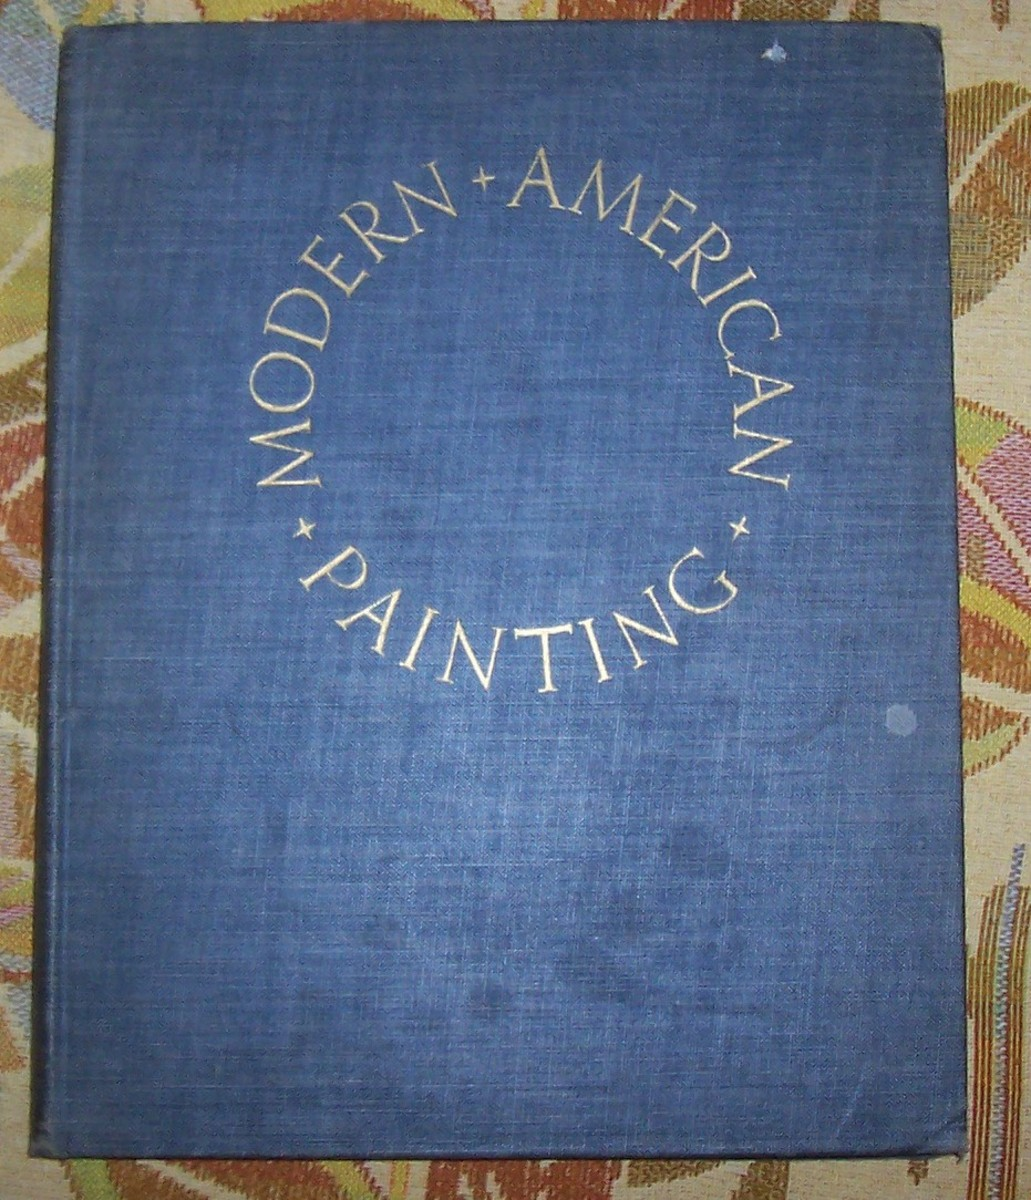 This is the book that my father bought with a weeks wages to see what Peter Hurd's art was like.